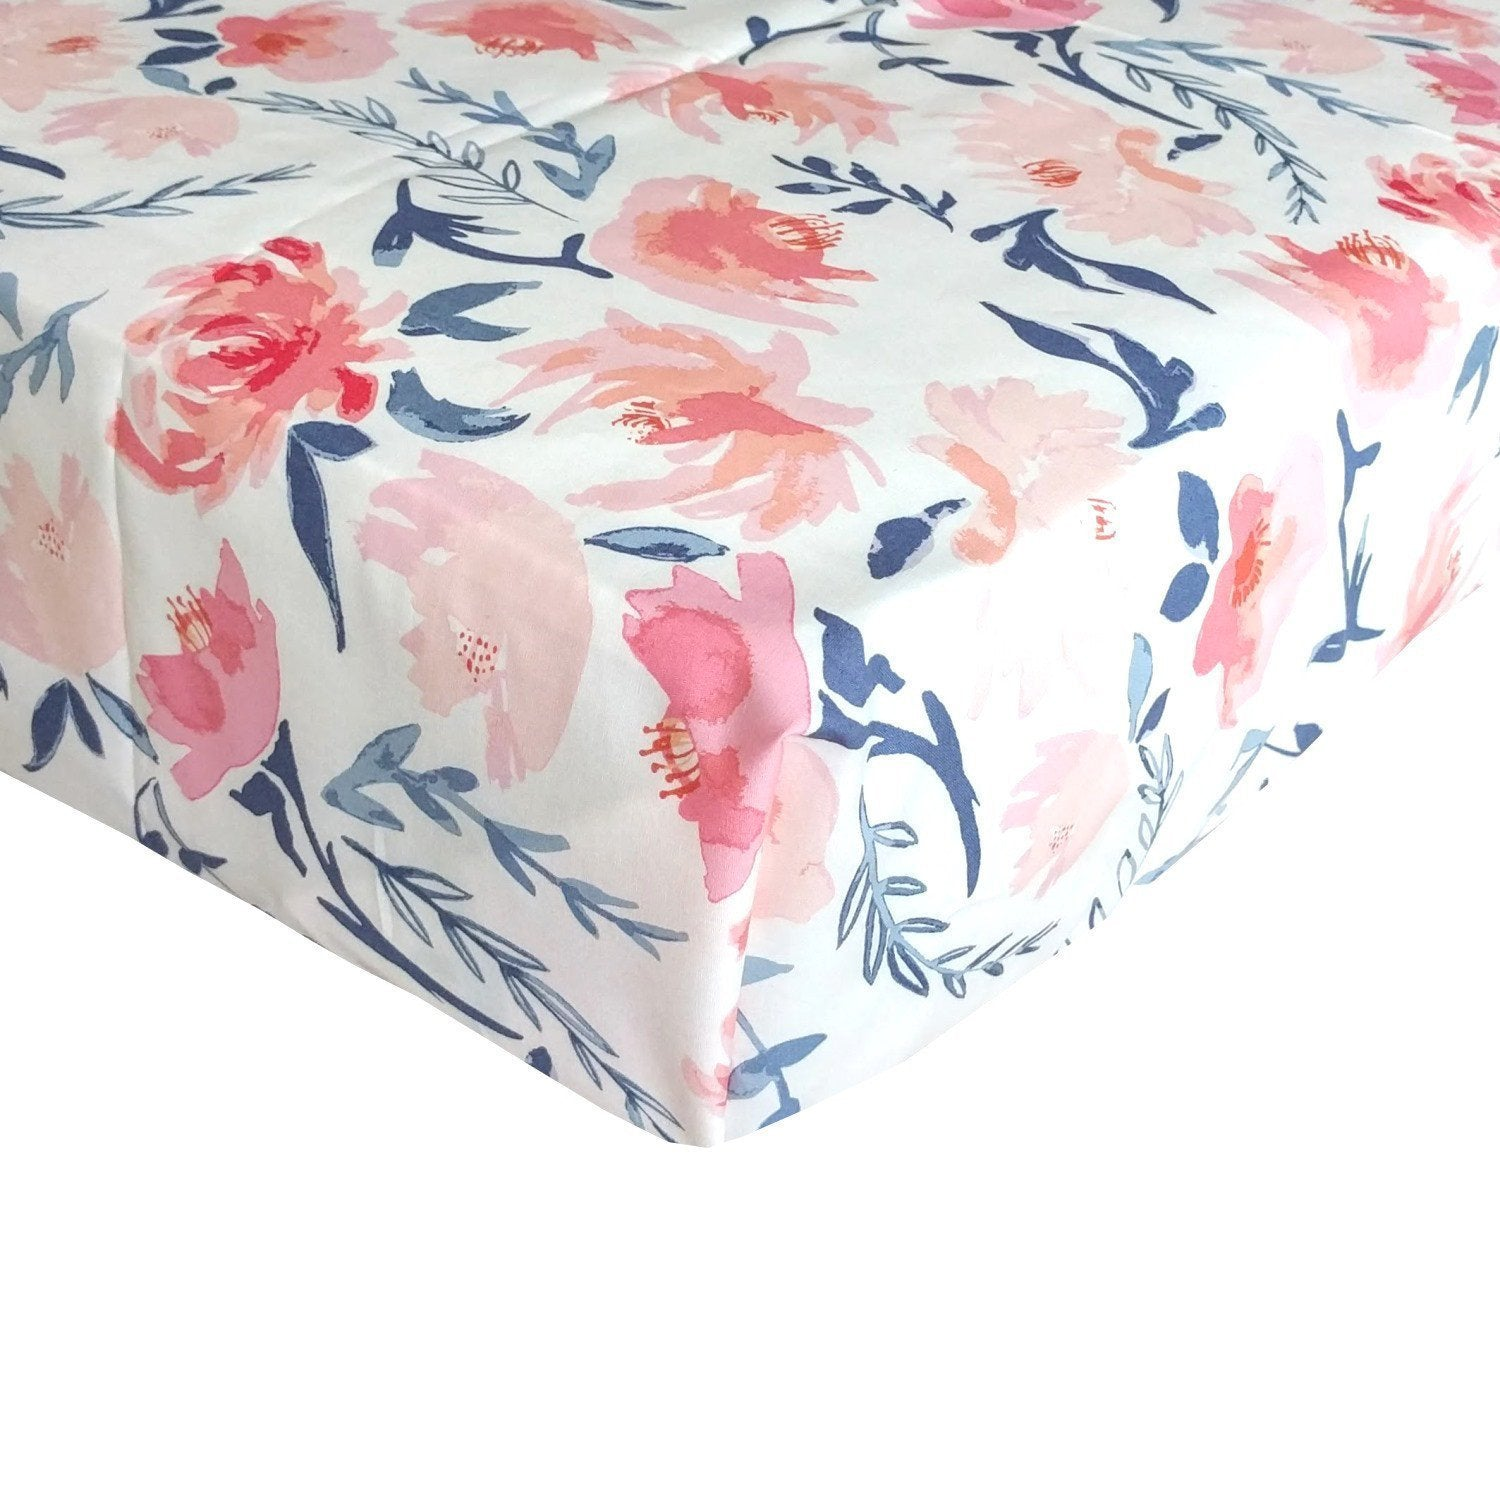 Fitted Crib Sheets | Blush, Peach And Navy Floral Baby Bedding Crib Sheets